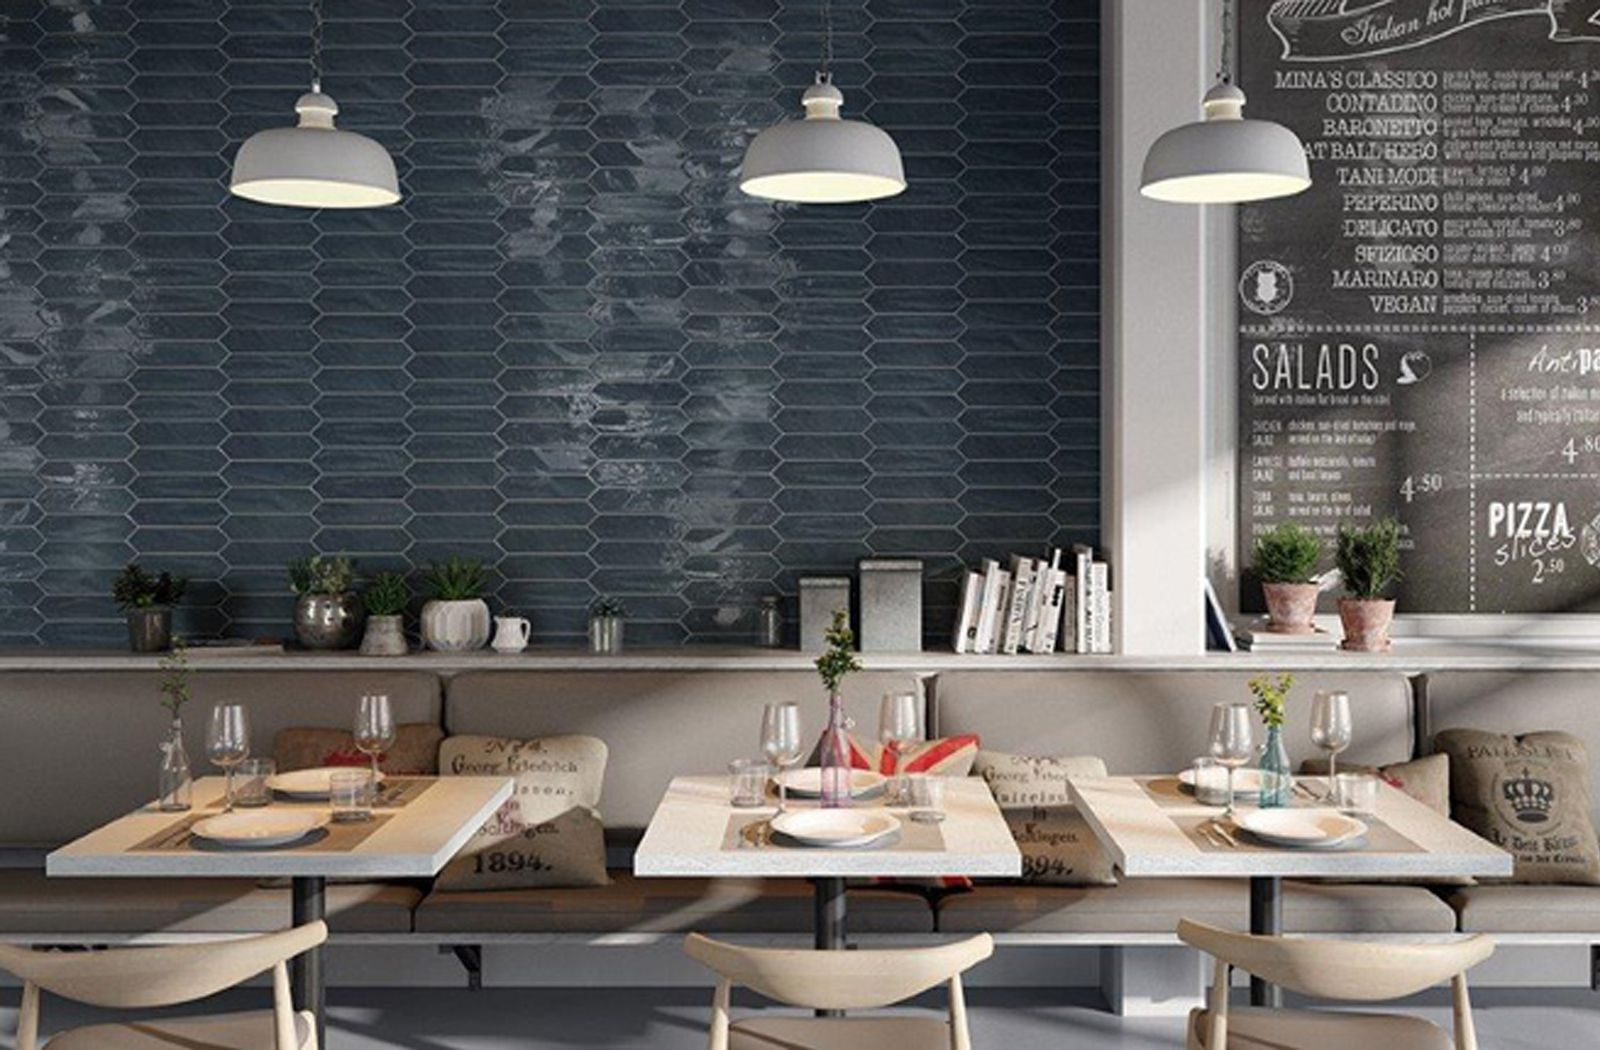 quirky cafe blue feature wall with hexagon tile. featuring crayon